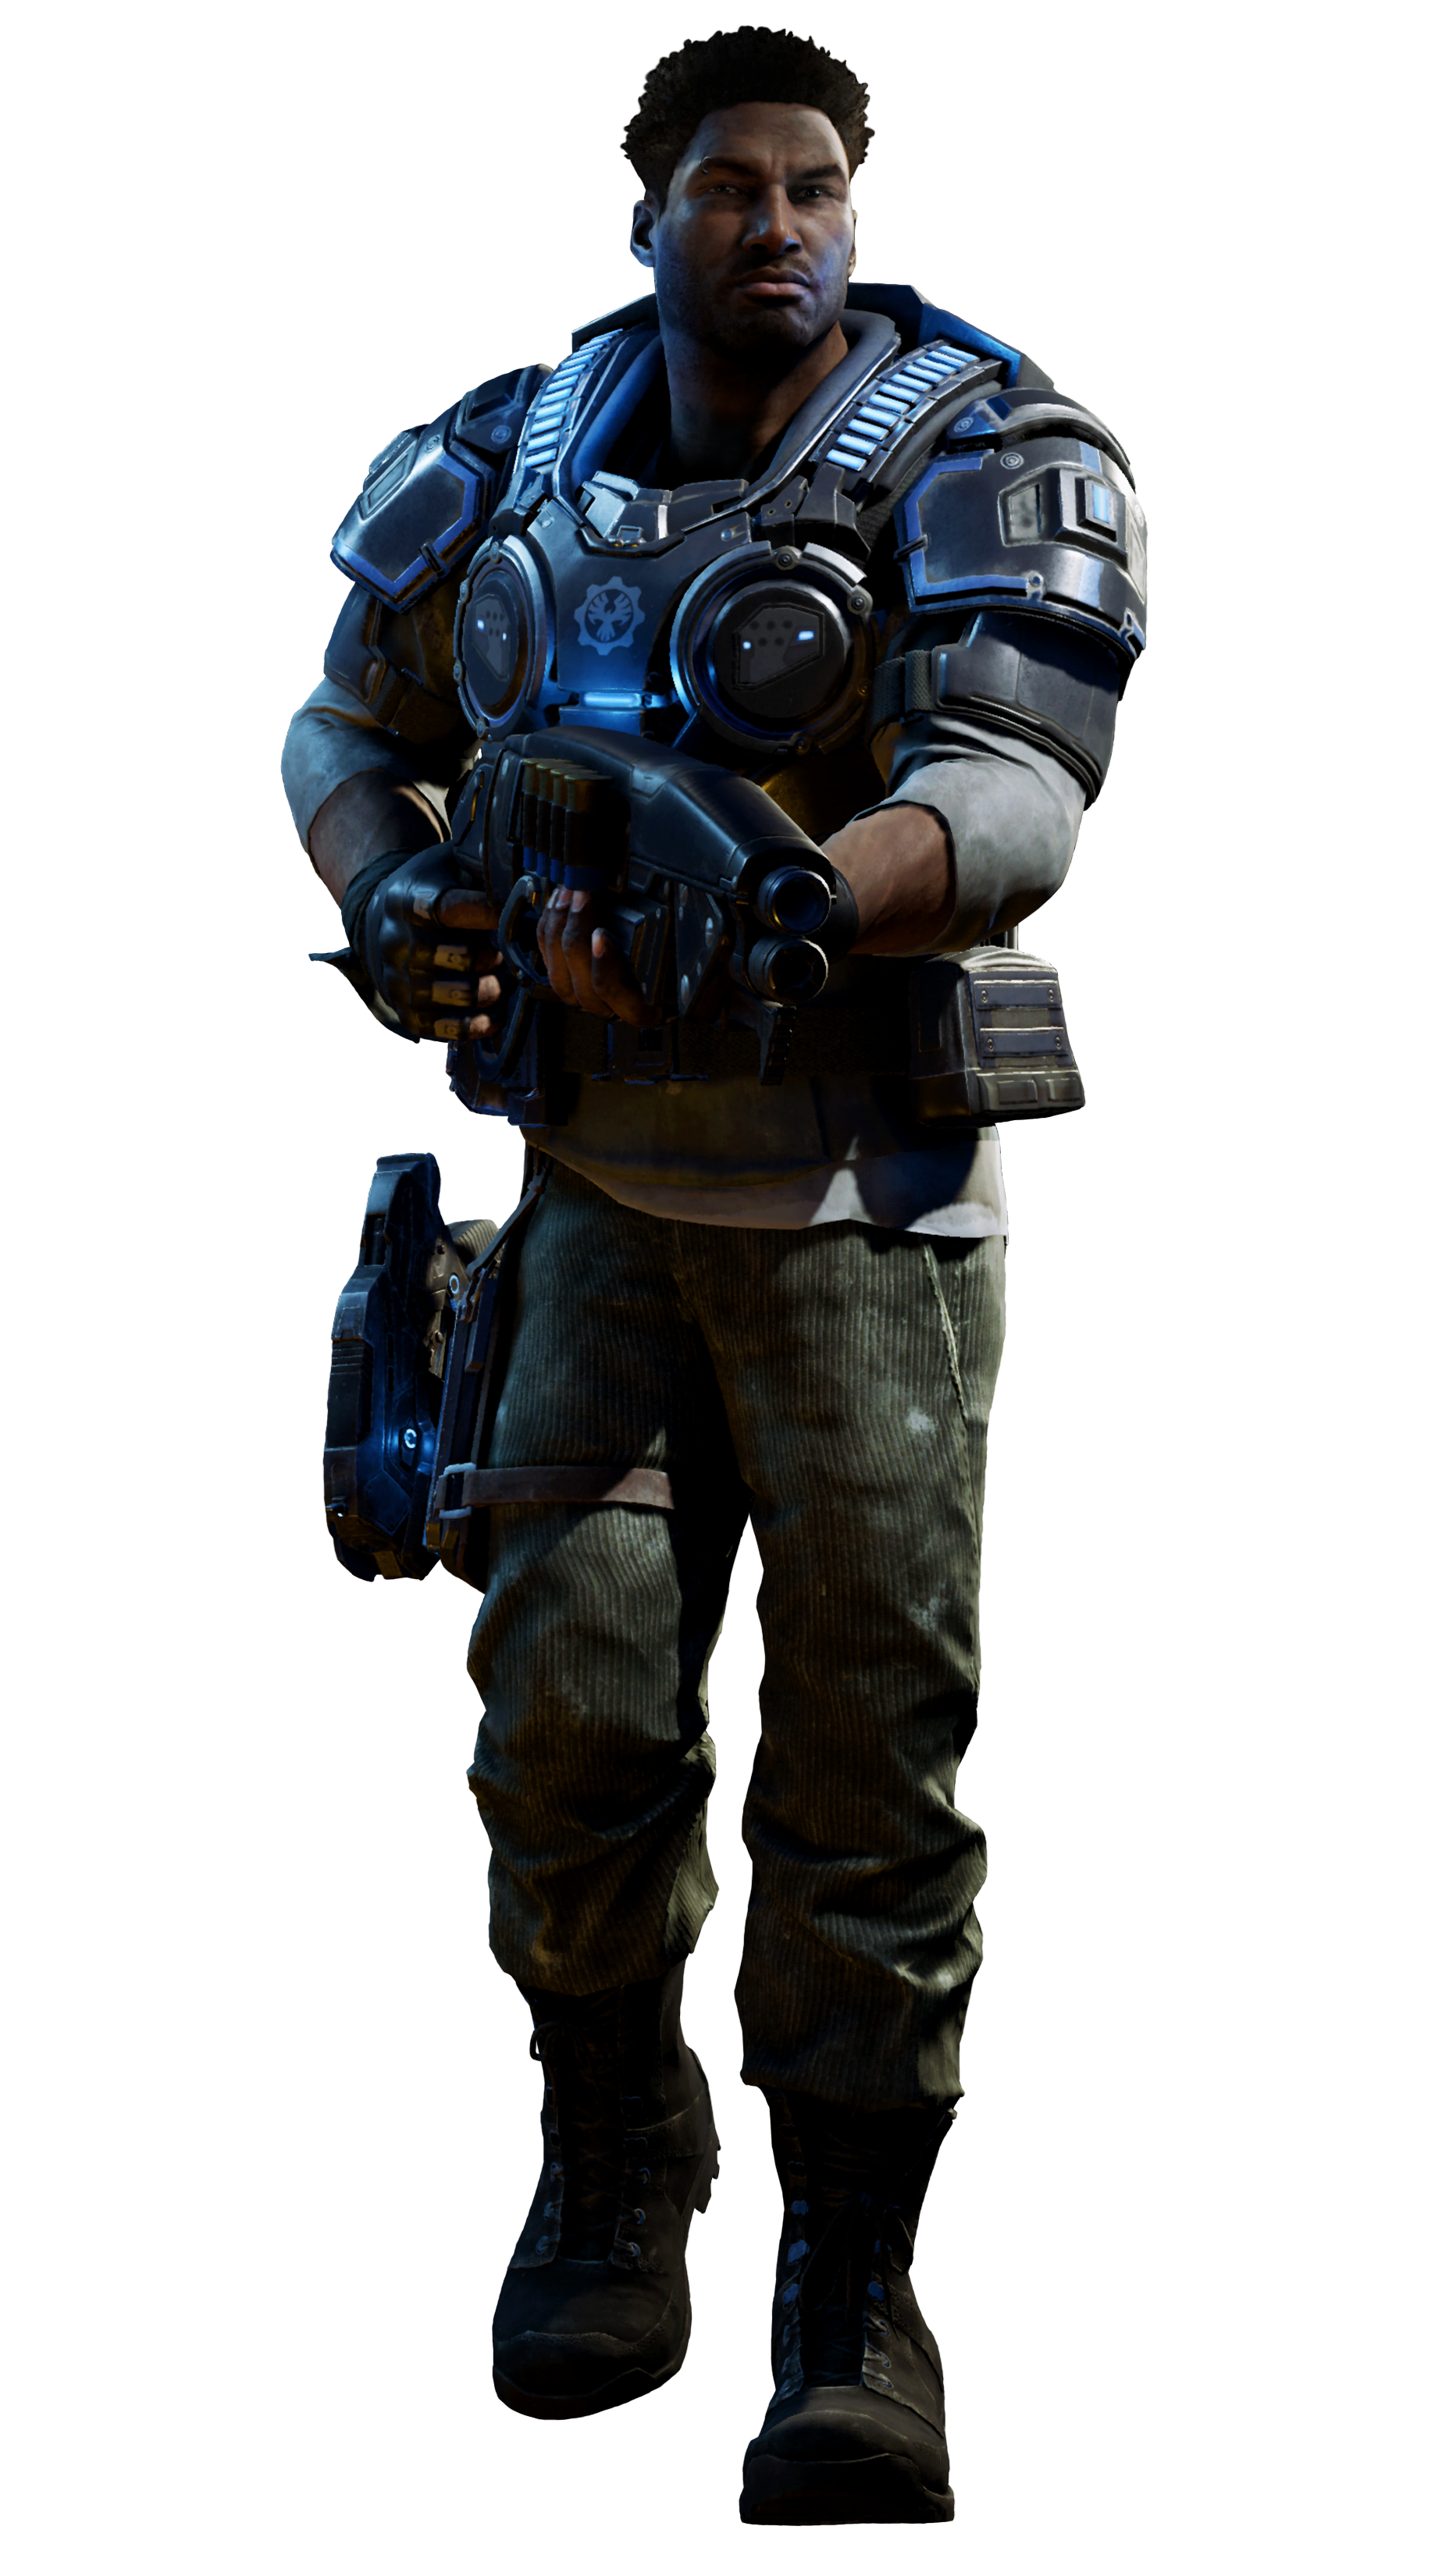 Gears-of-War-4_Character_Del.png1856x3300 3.18 MB - Gears Of War PNG